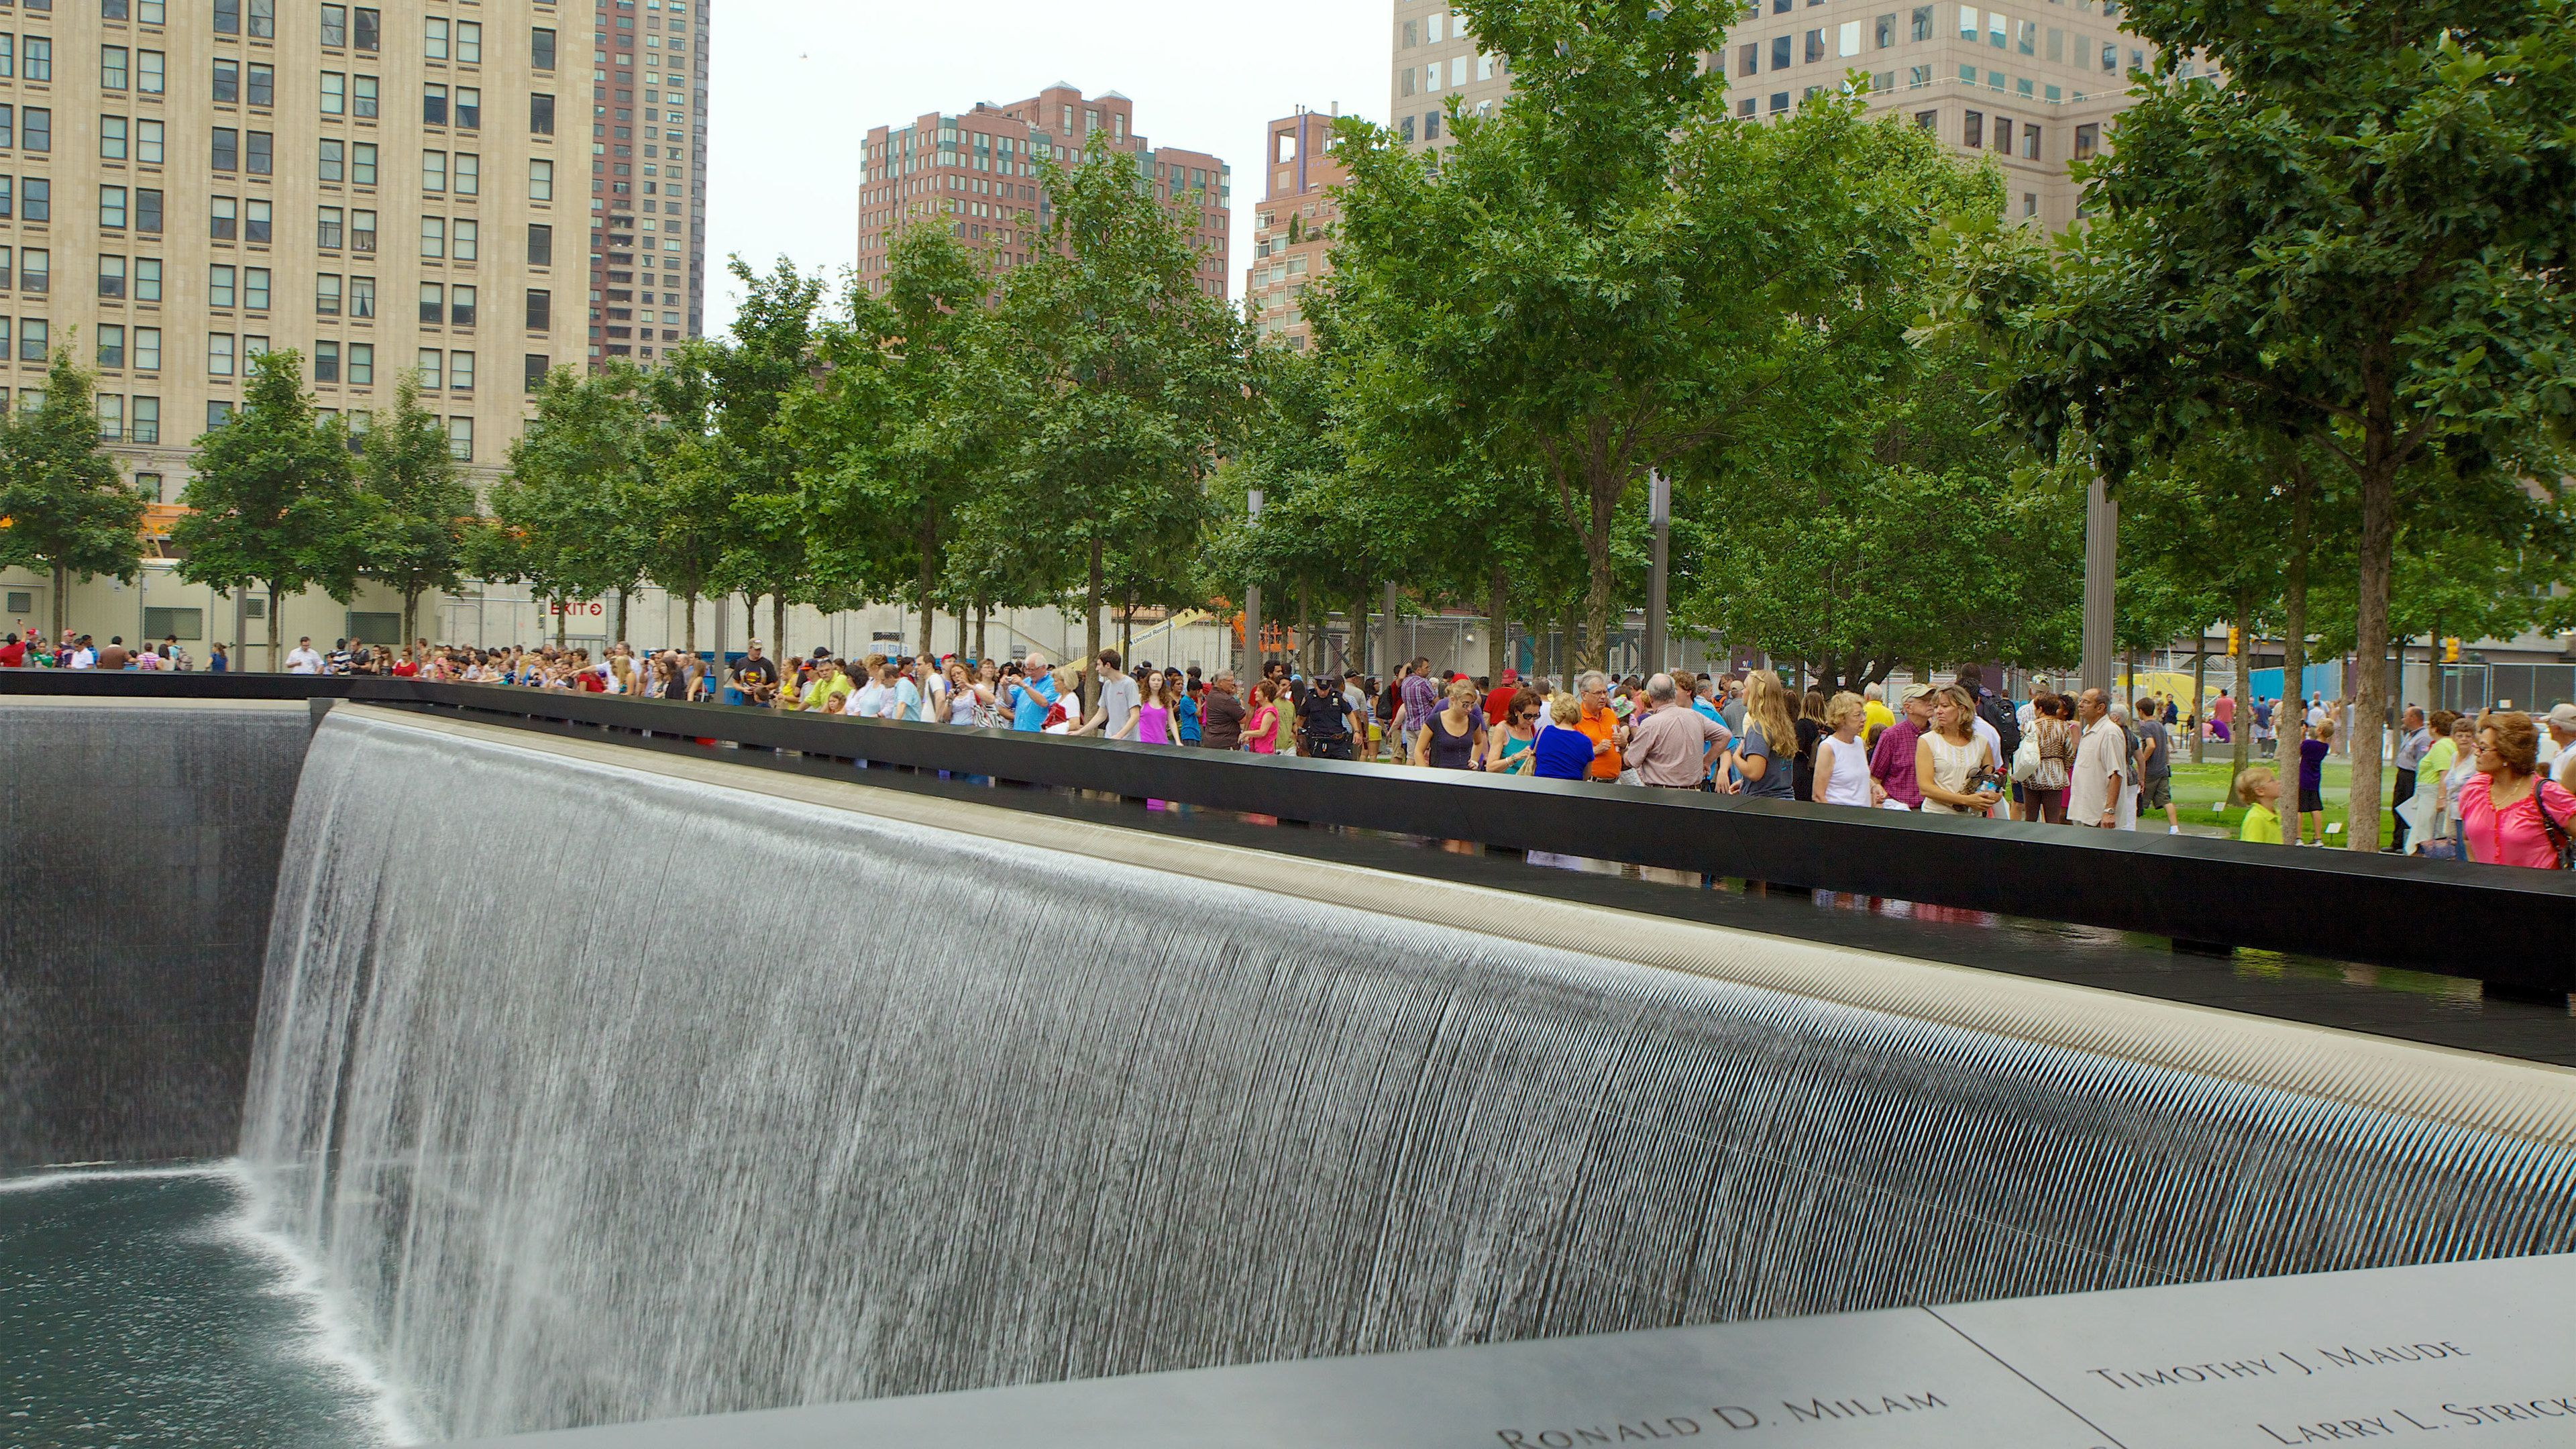 Fountain at the 9/11 Memorial in New York